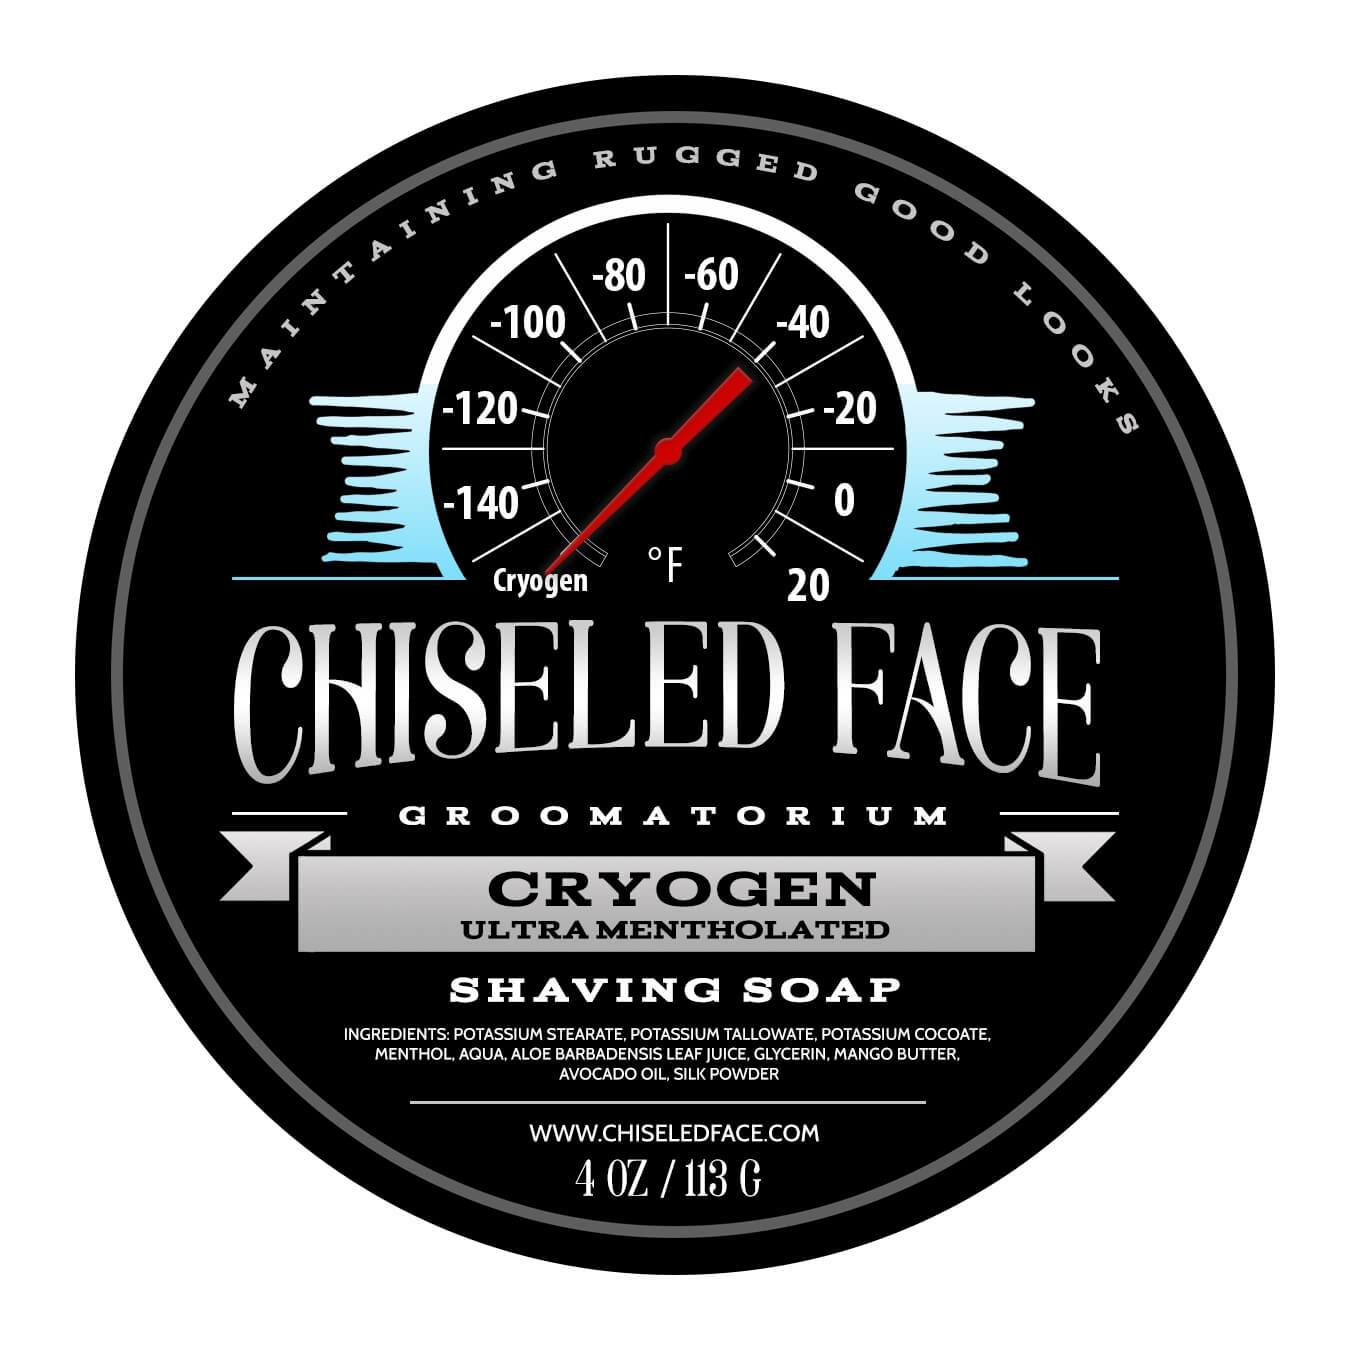 Chiseled Face - Cryogen - Soap image